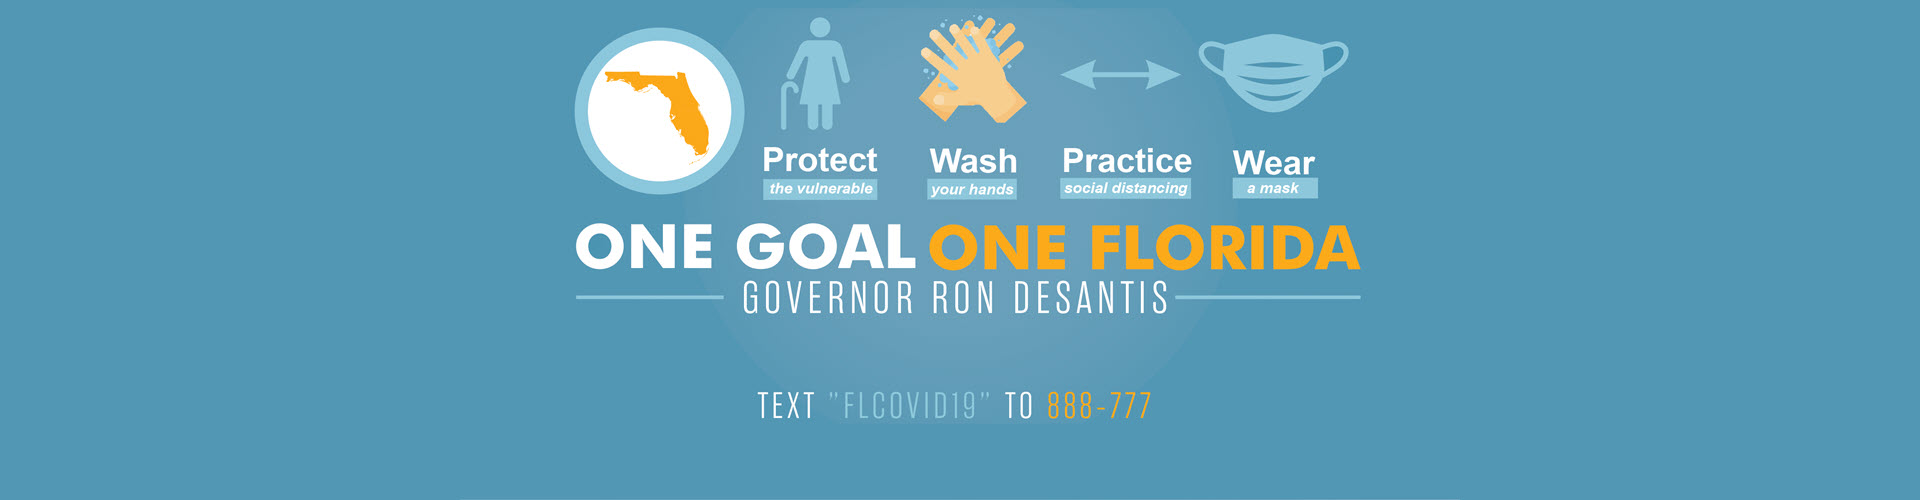 One Goal One Florida image - Protect the vulnerable - Wash your hands - Practice social distancing - Wear a mask